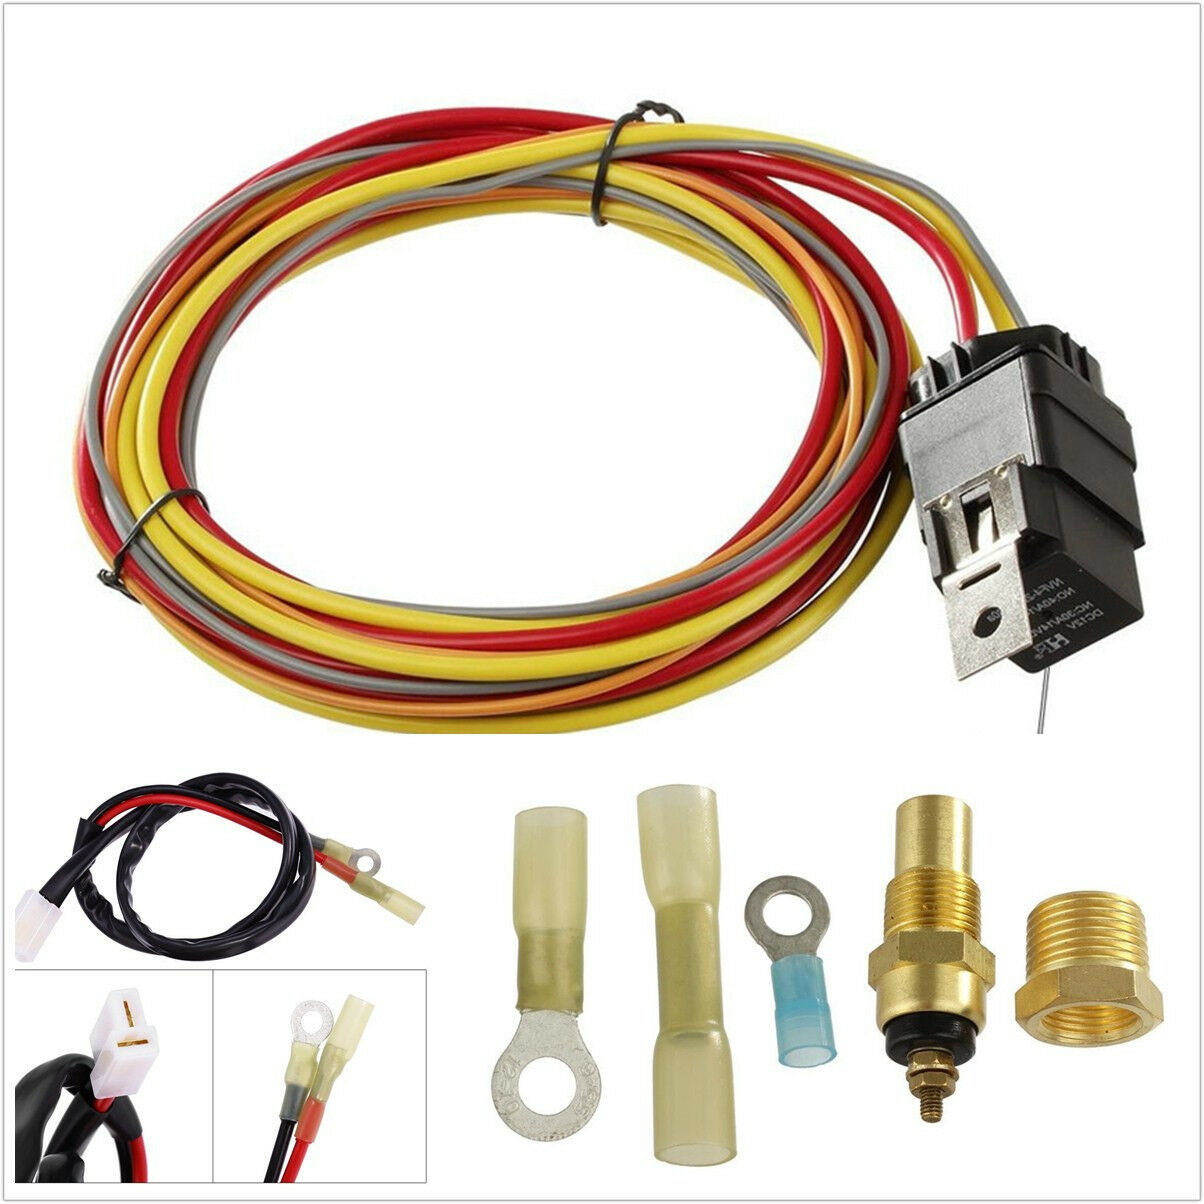 Professional Auto Electric Cooling Fan Single Control Wiring Harness Automotive Electrical Supplies Norton Secured Powered By Verisign